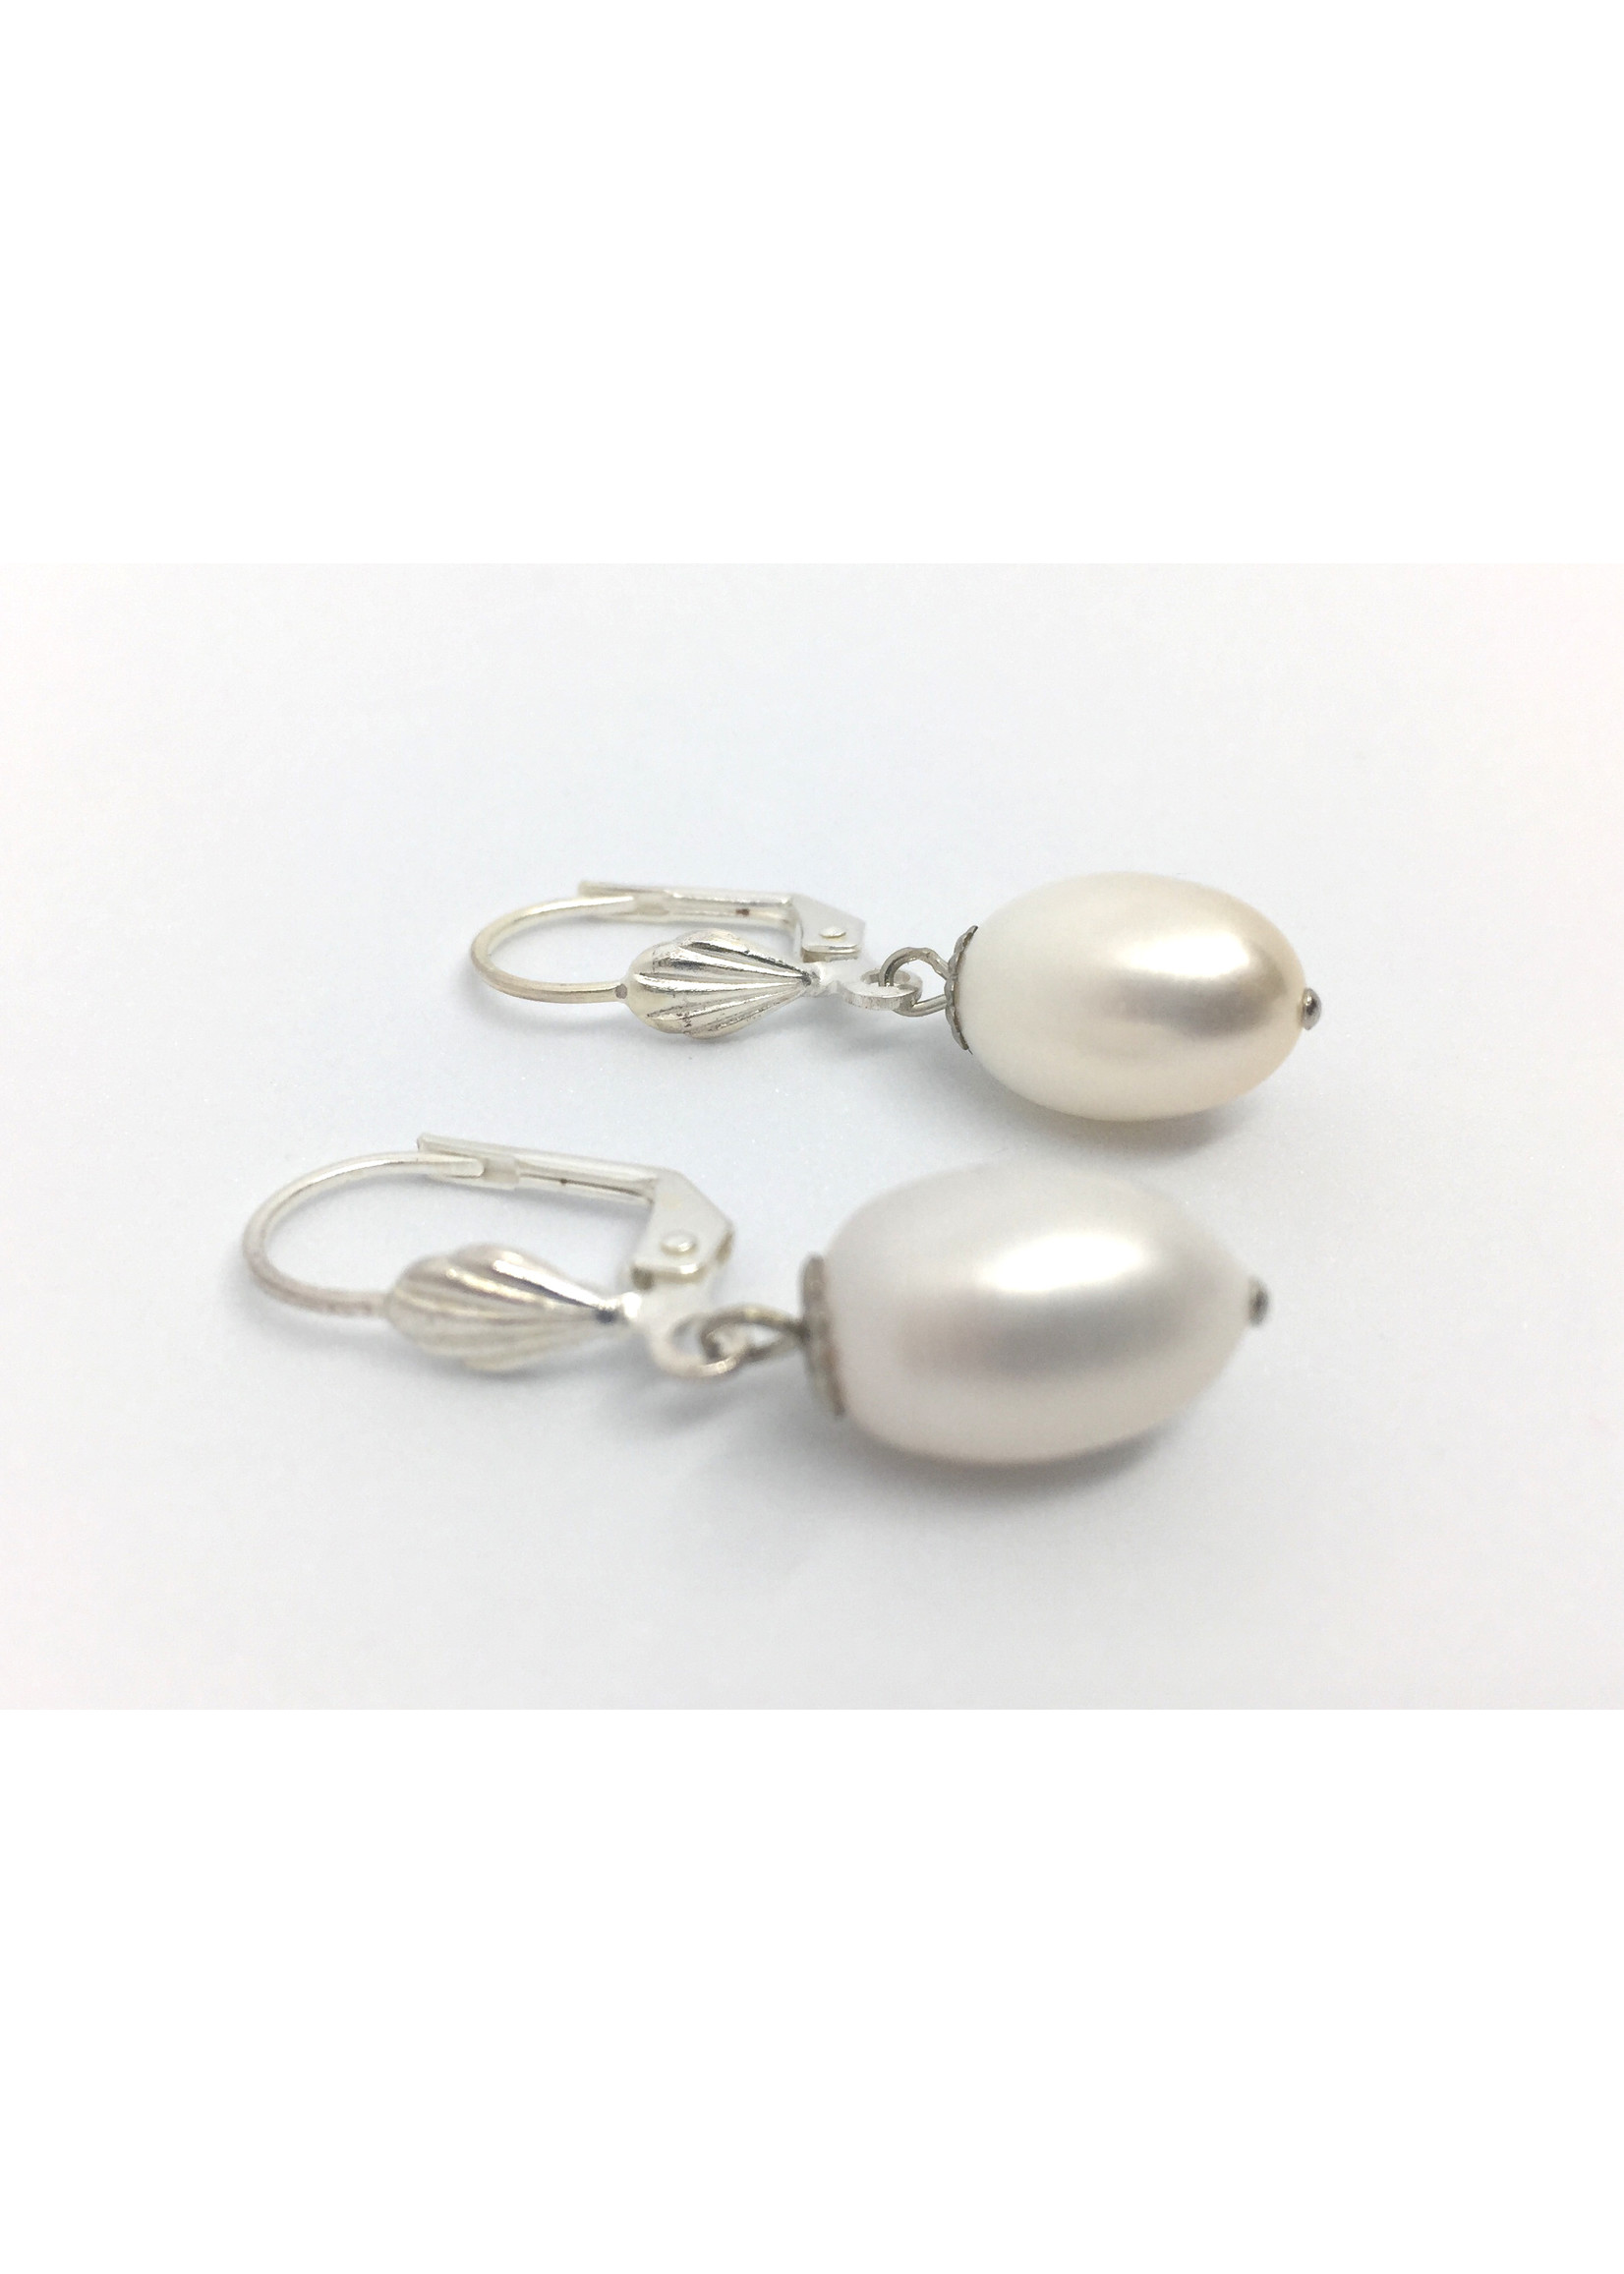 Silver plated earrings from Els de Ruyter with freshwater pearls